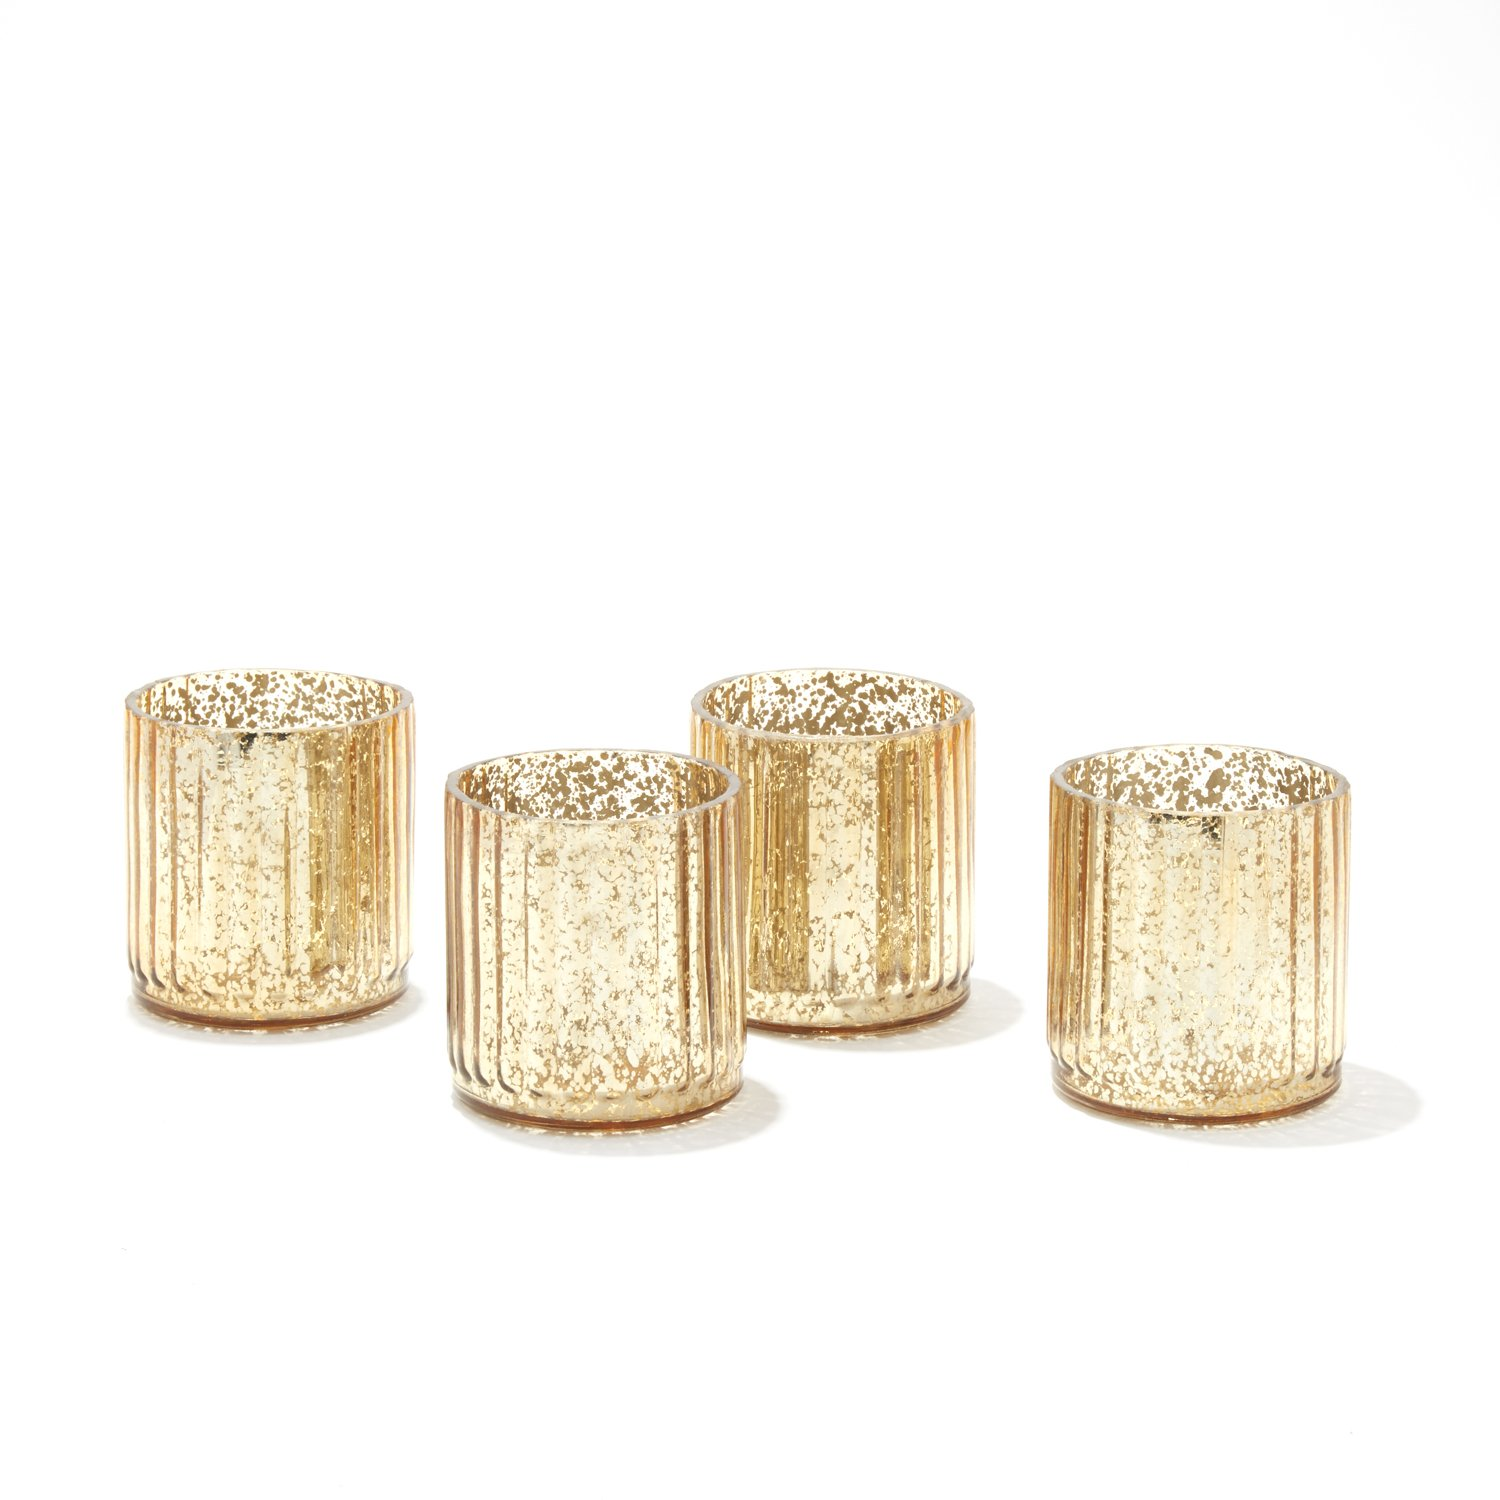 LampLust Gold Mercury Glass Candle Holder - Decorative Accessory for Holidays, Weddings, Parties and Home Decor LC004224